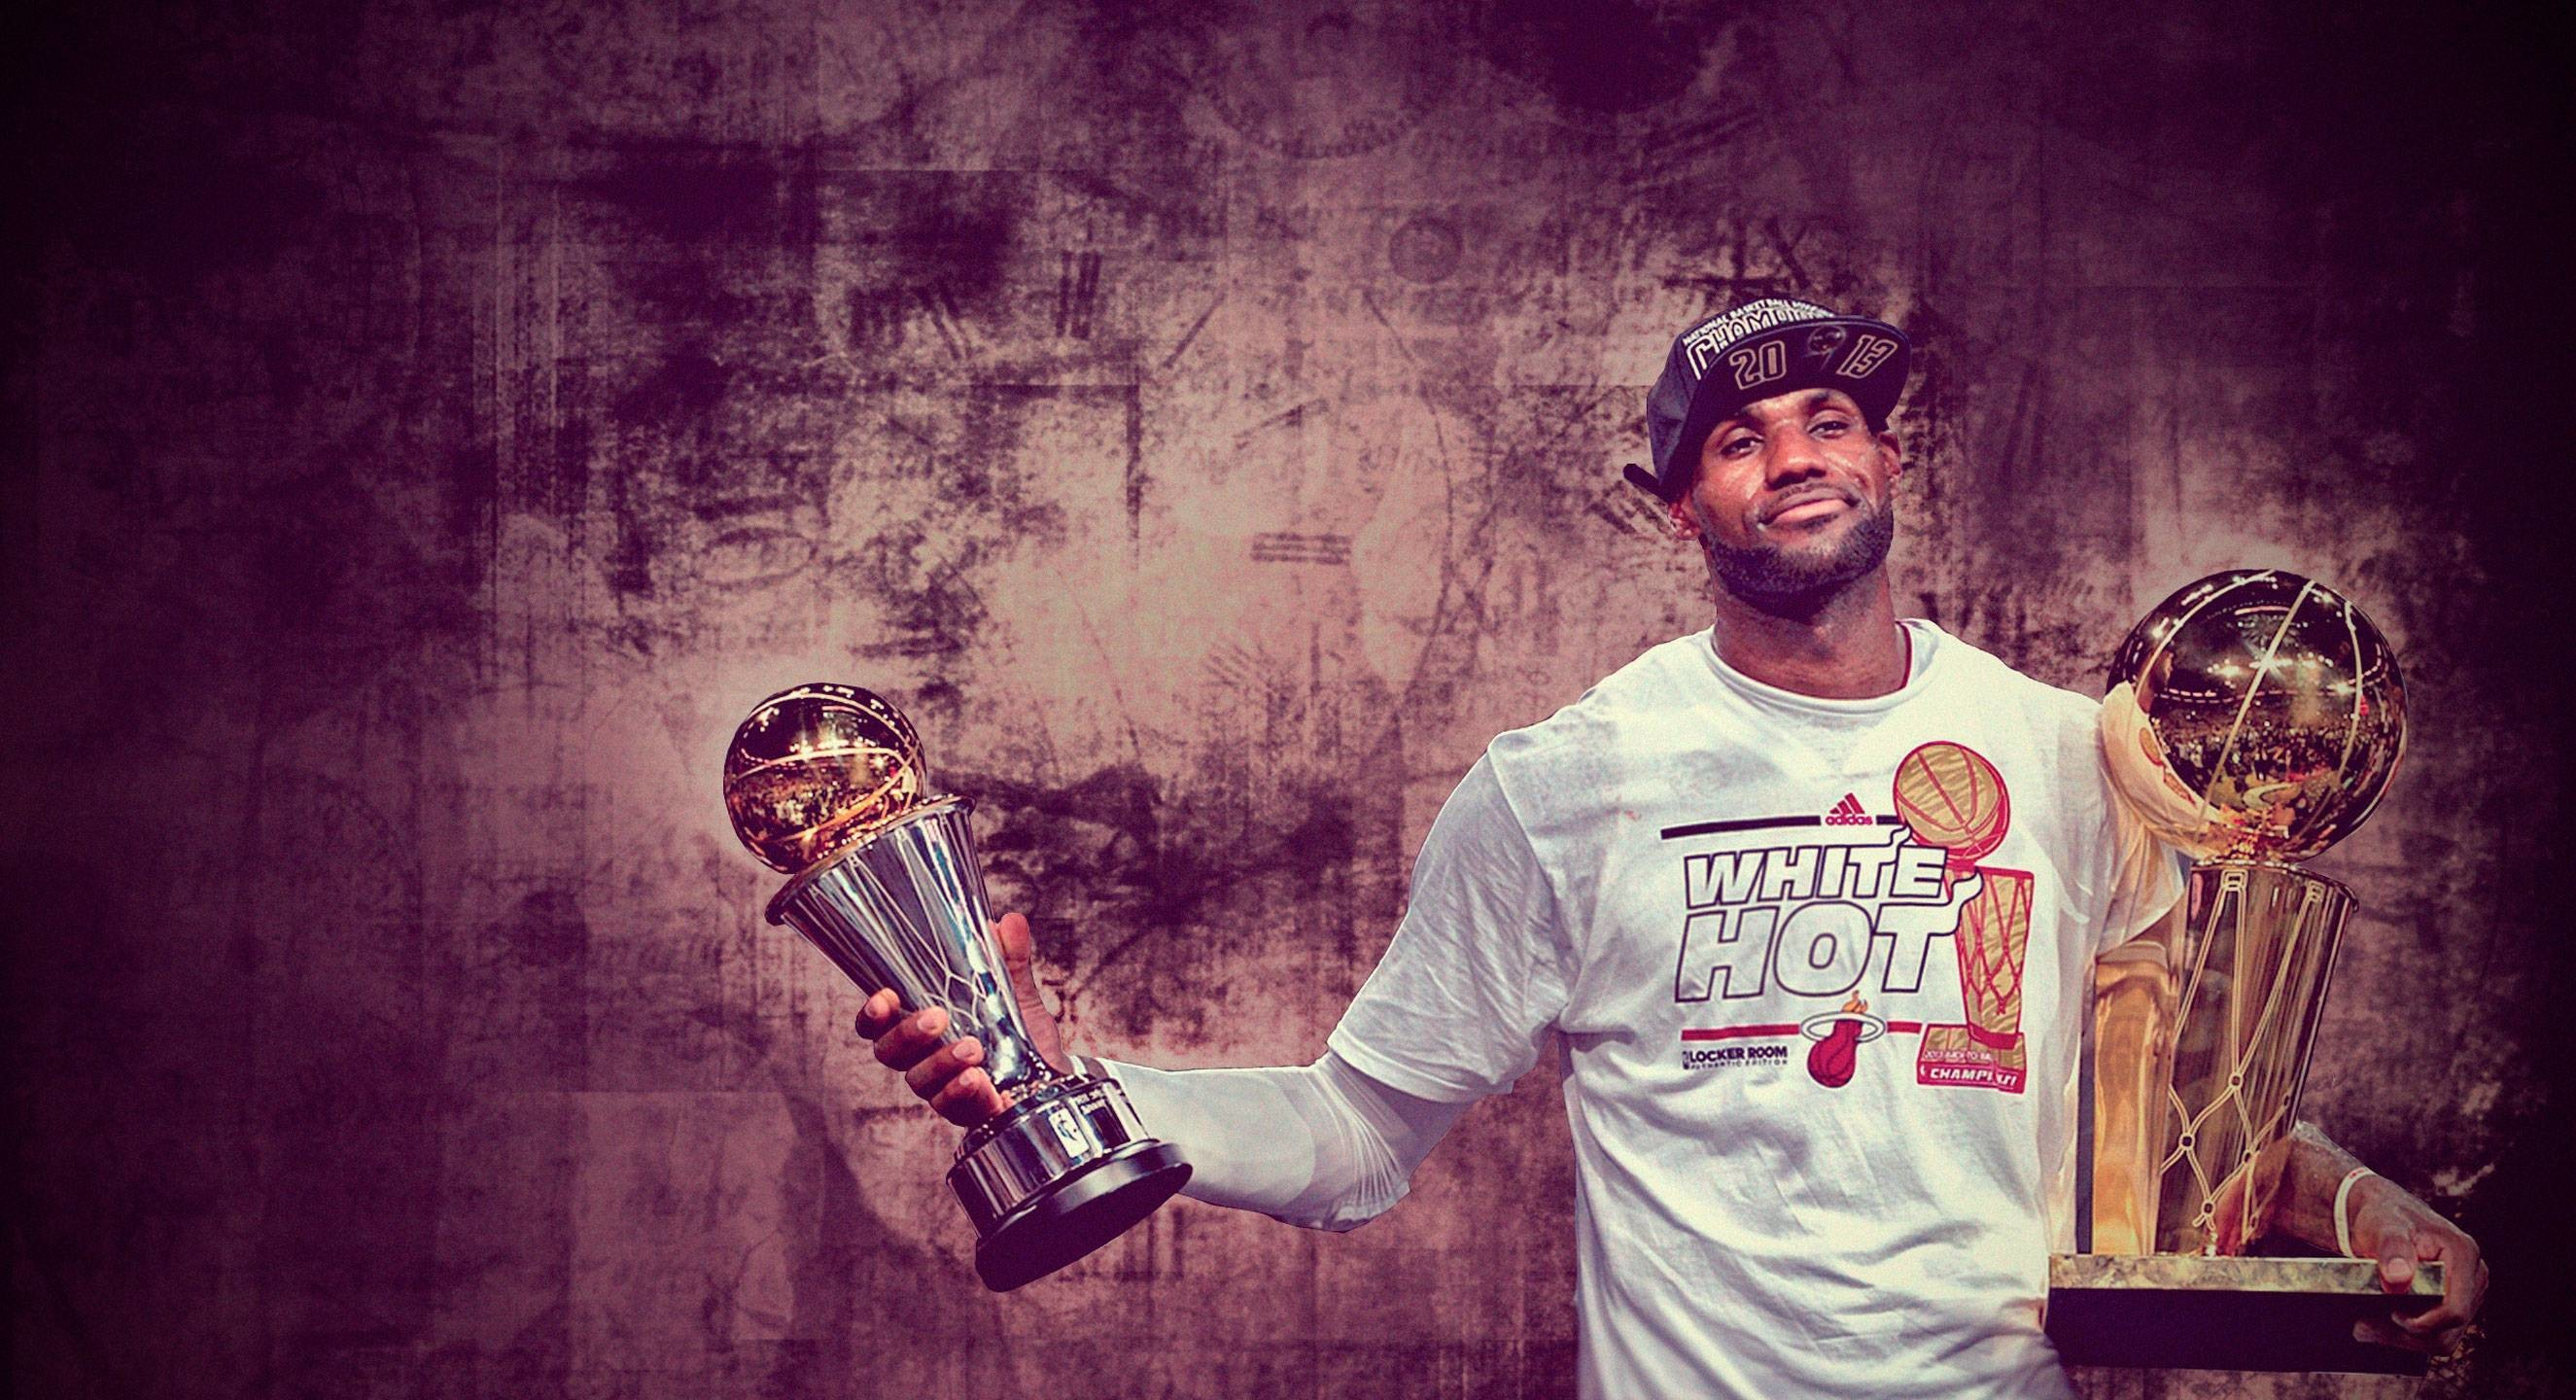 2650x1440 LeBron James Slamdunk 2014 HD Wallpaper #3127 | Foolhardi.